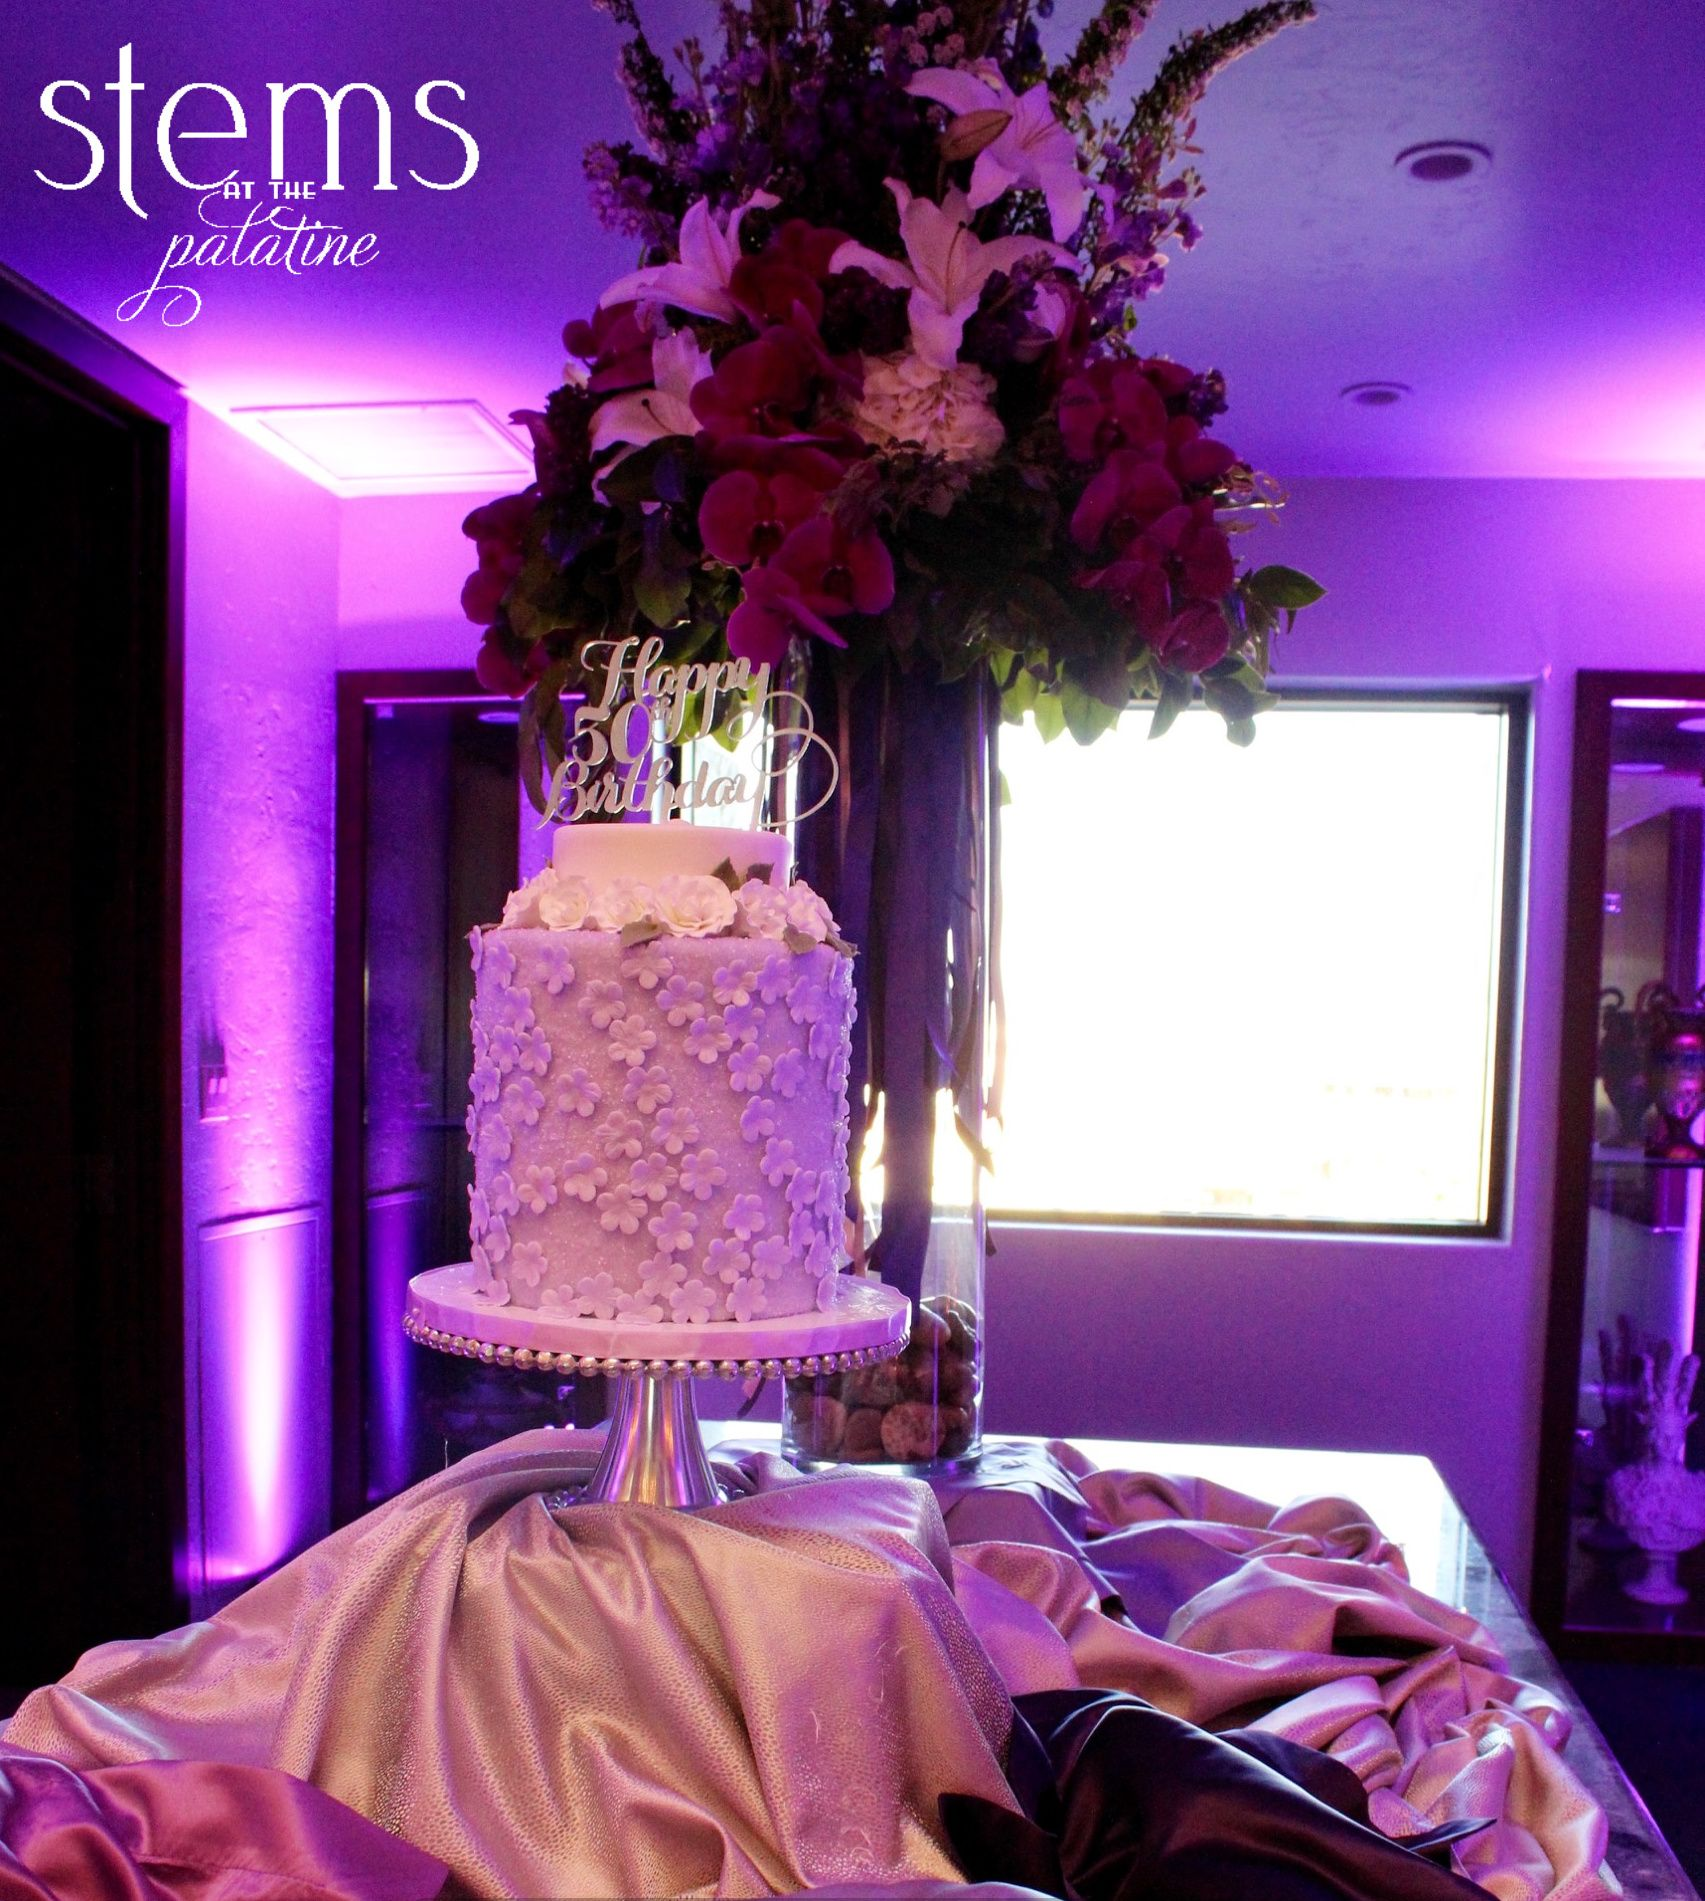 Cake table decor & styling for a glamorous purple theme To see more check out our blog! http://www.rsvp-blog.com/lifes-celebrations-1/glamorous-purple-theme-surprise-party